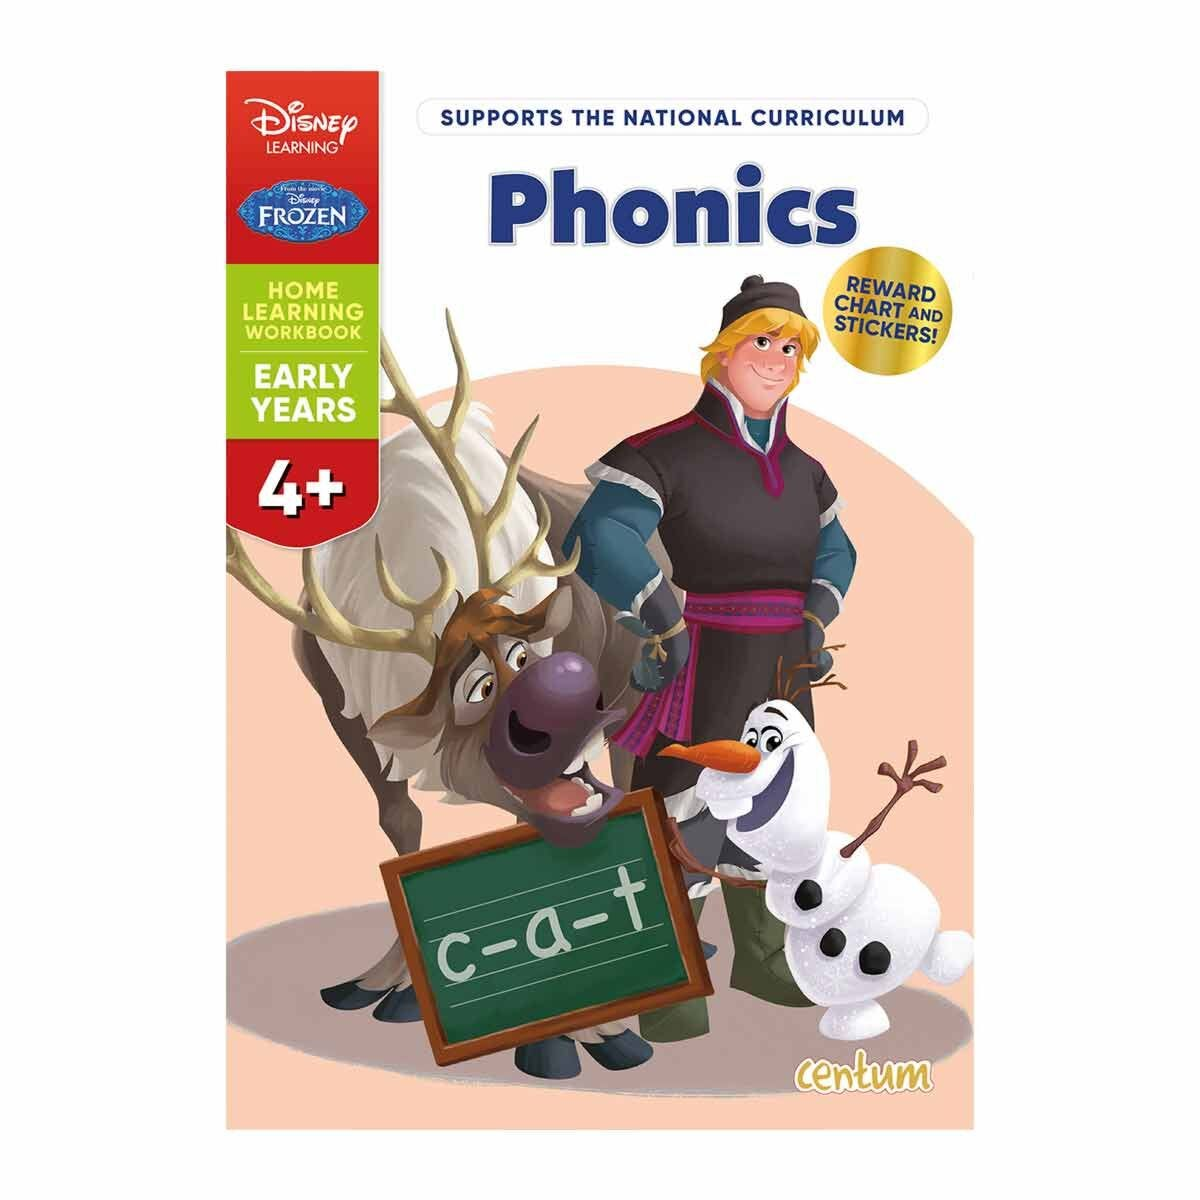 Centum Disney Learning Frozen Phonics 4